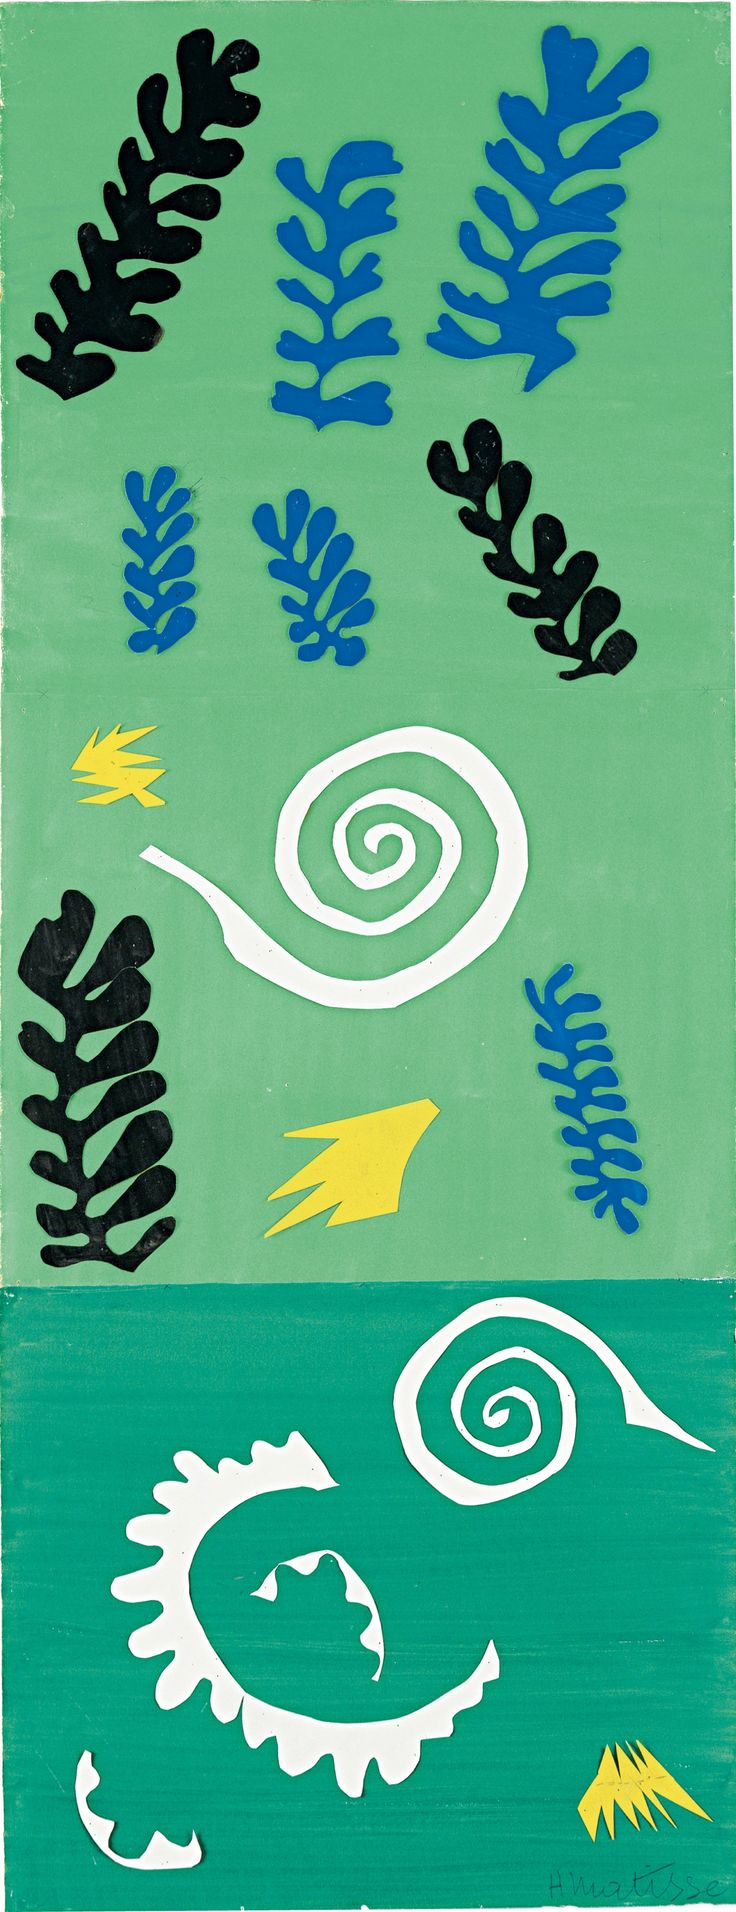 matisse cutouts moma - Bing Images                                                                                                                                                                                 More